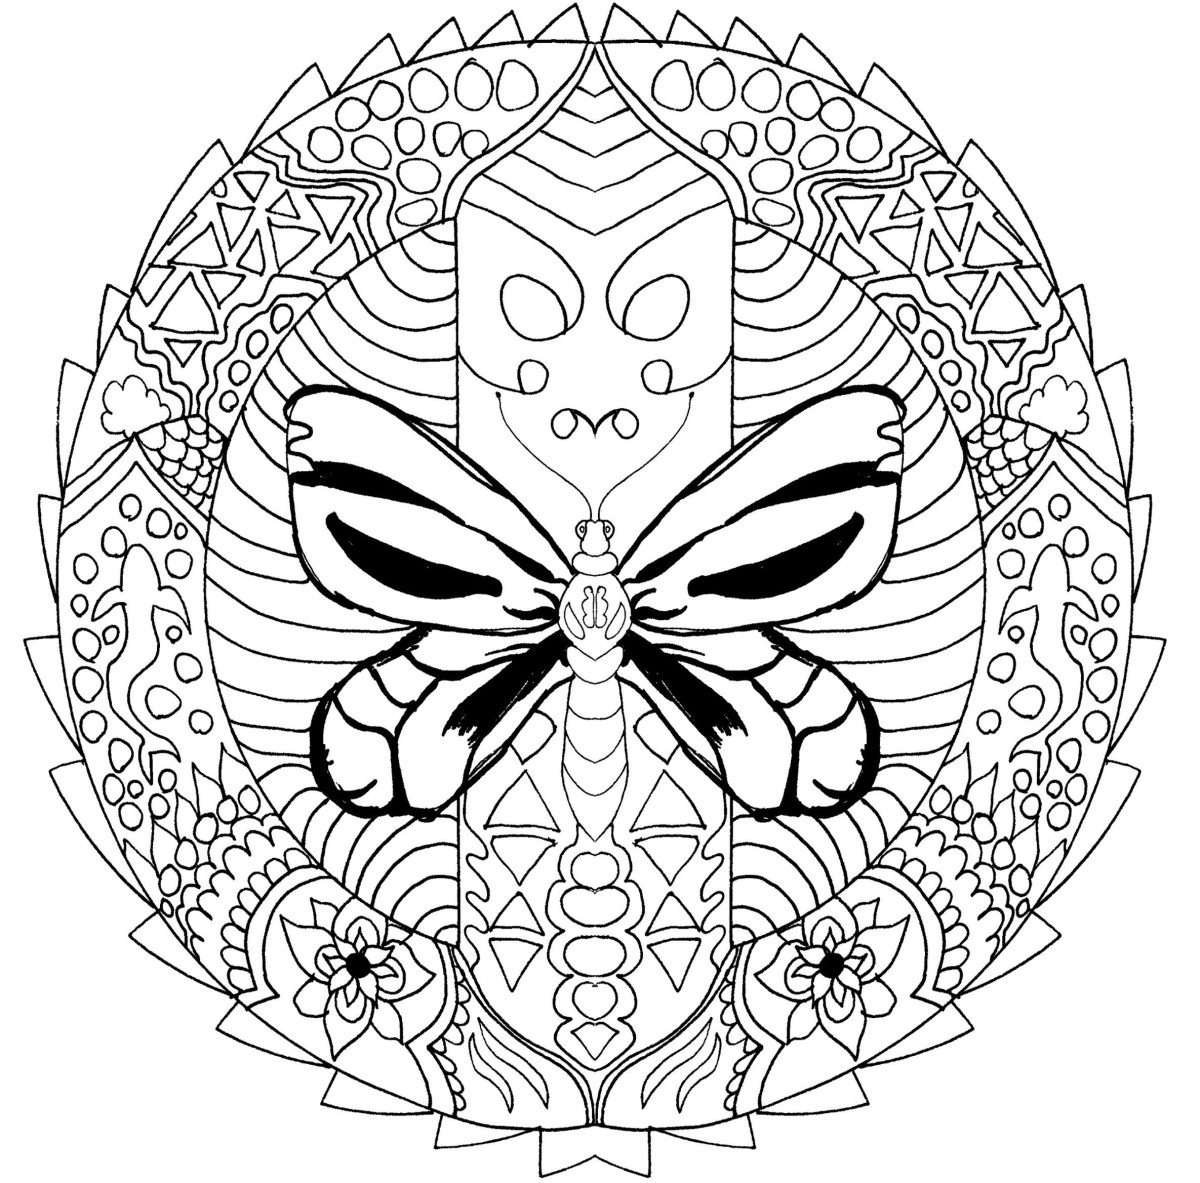 This page features a dragonfly in the middle of a mandala-inspired design.